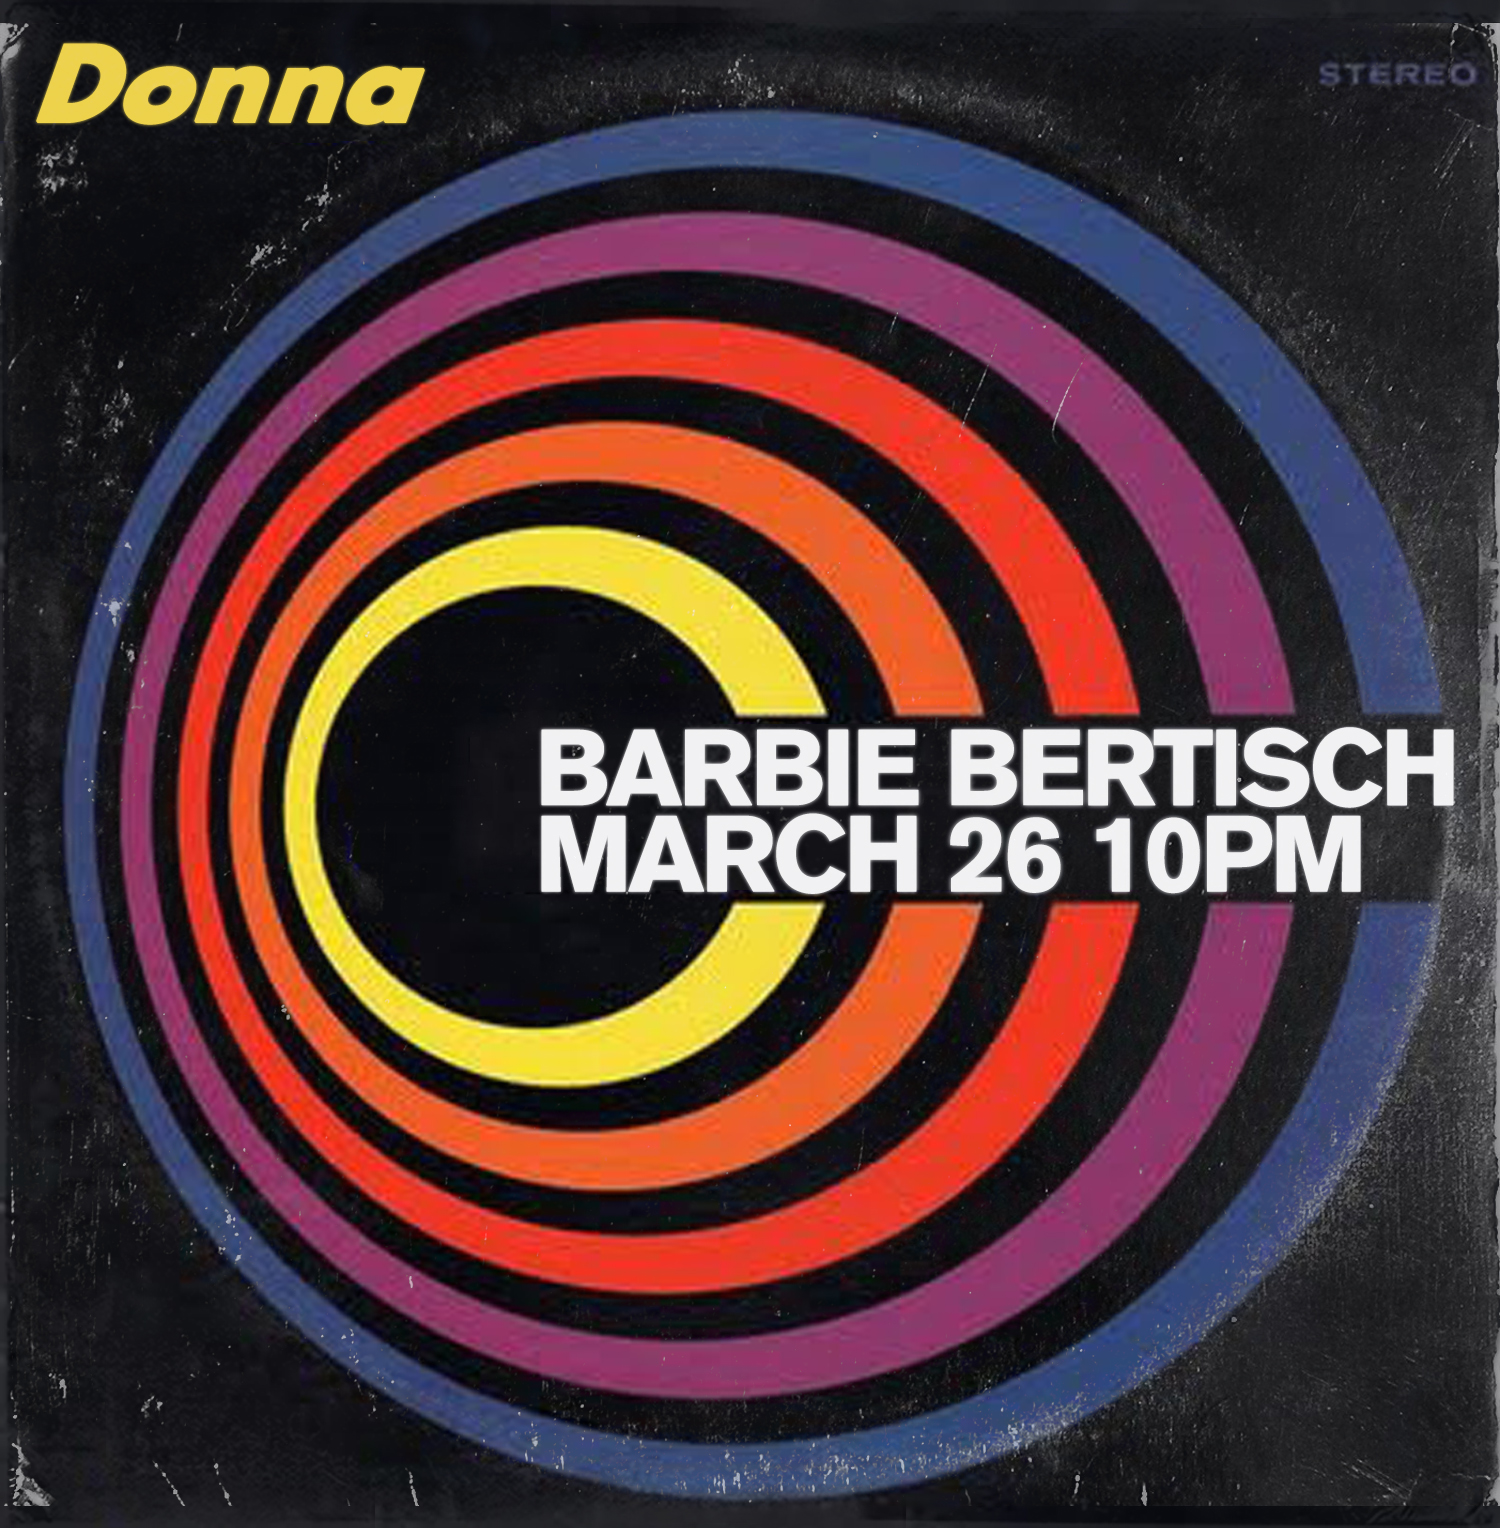 barbie bertisch donna cocktail club march 15